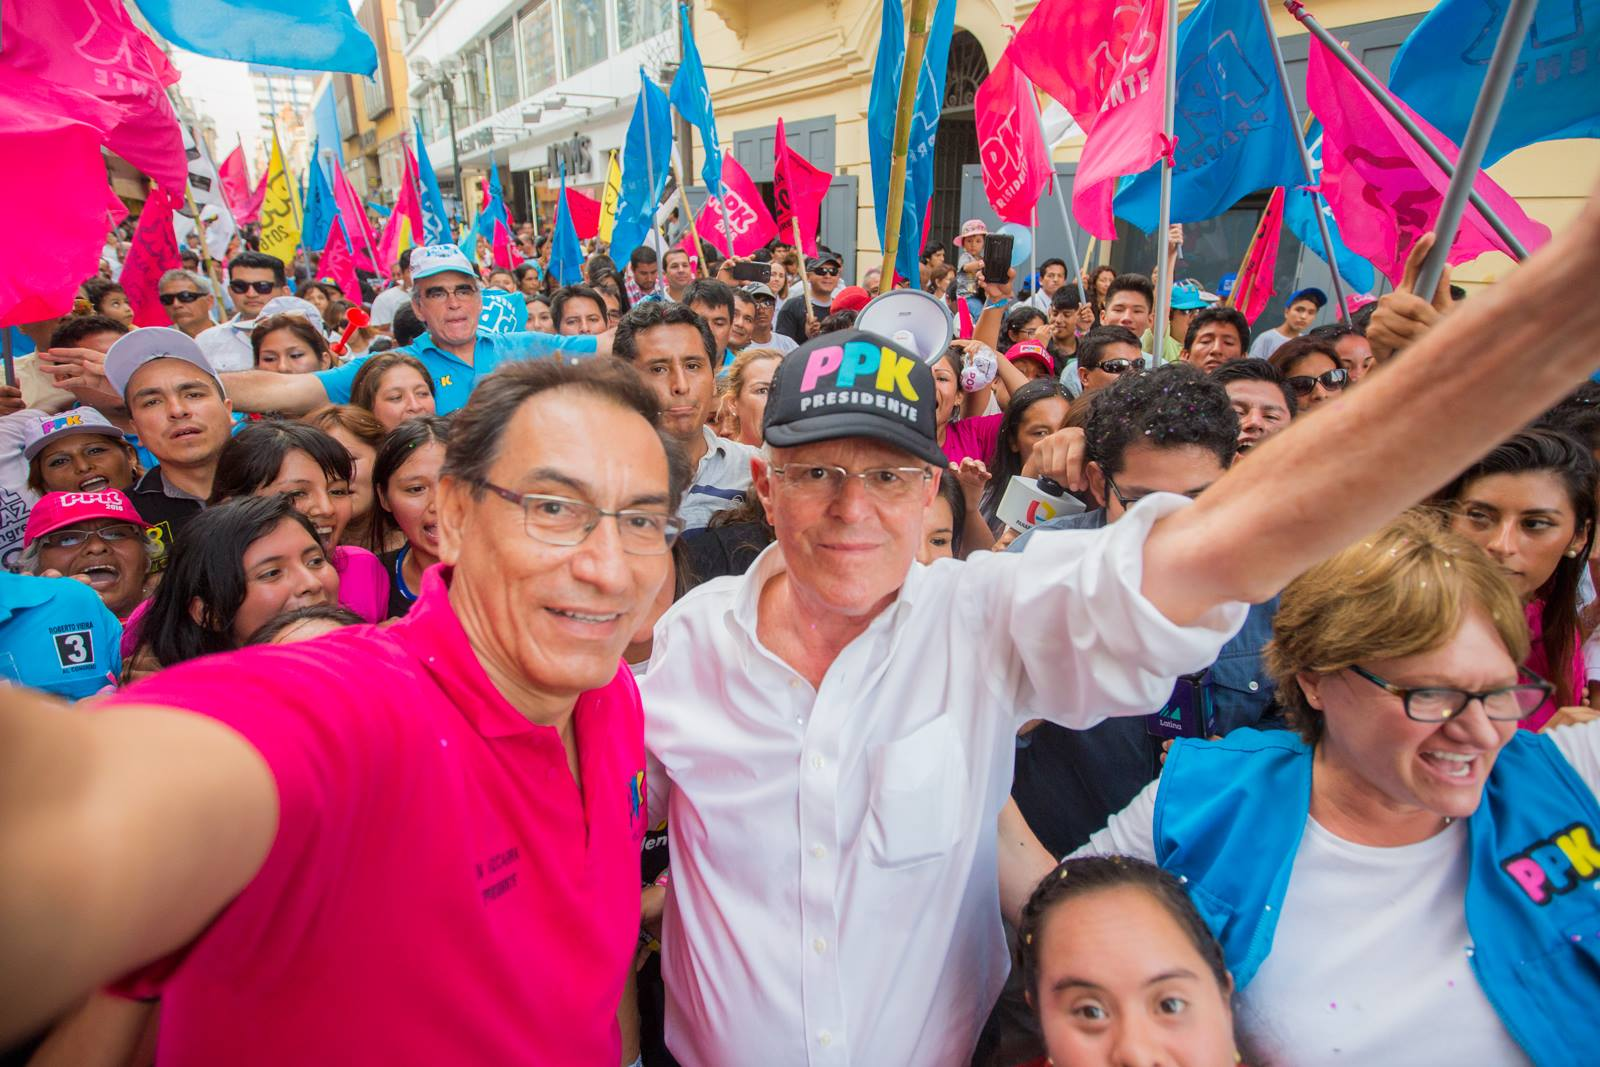 Pedro Pablo Kuczynski, or just 'PPK' to most Peruvians, is making his second run for the presidency. (Facebook)